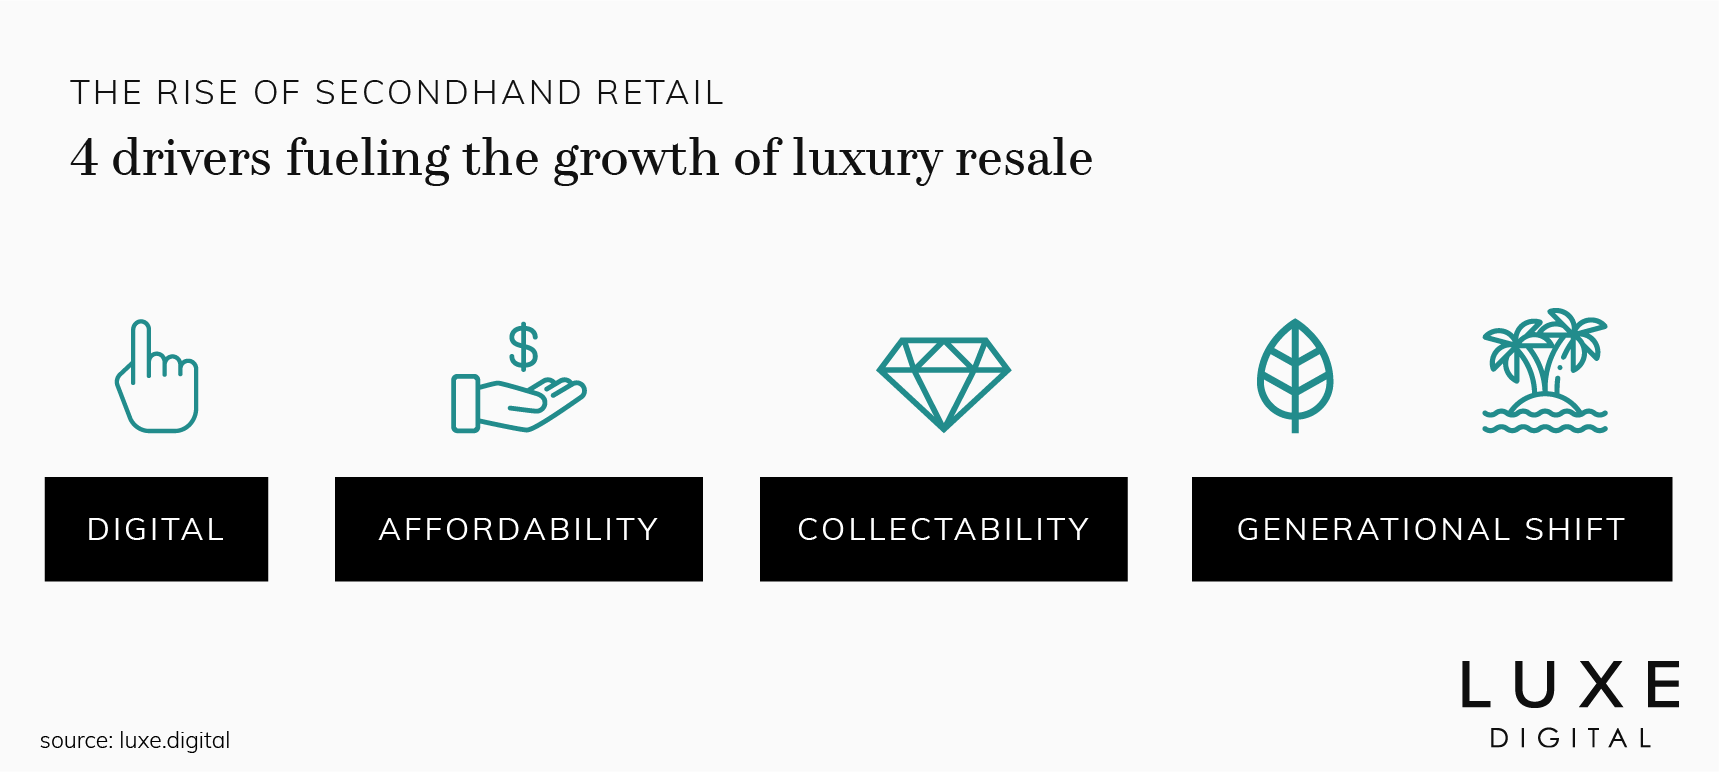 luxury resale growth drivers luxe digital